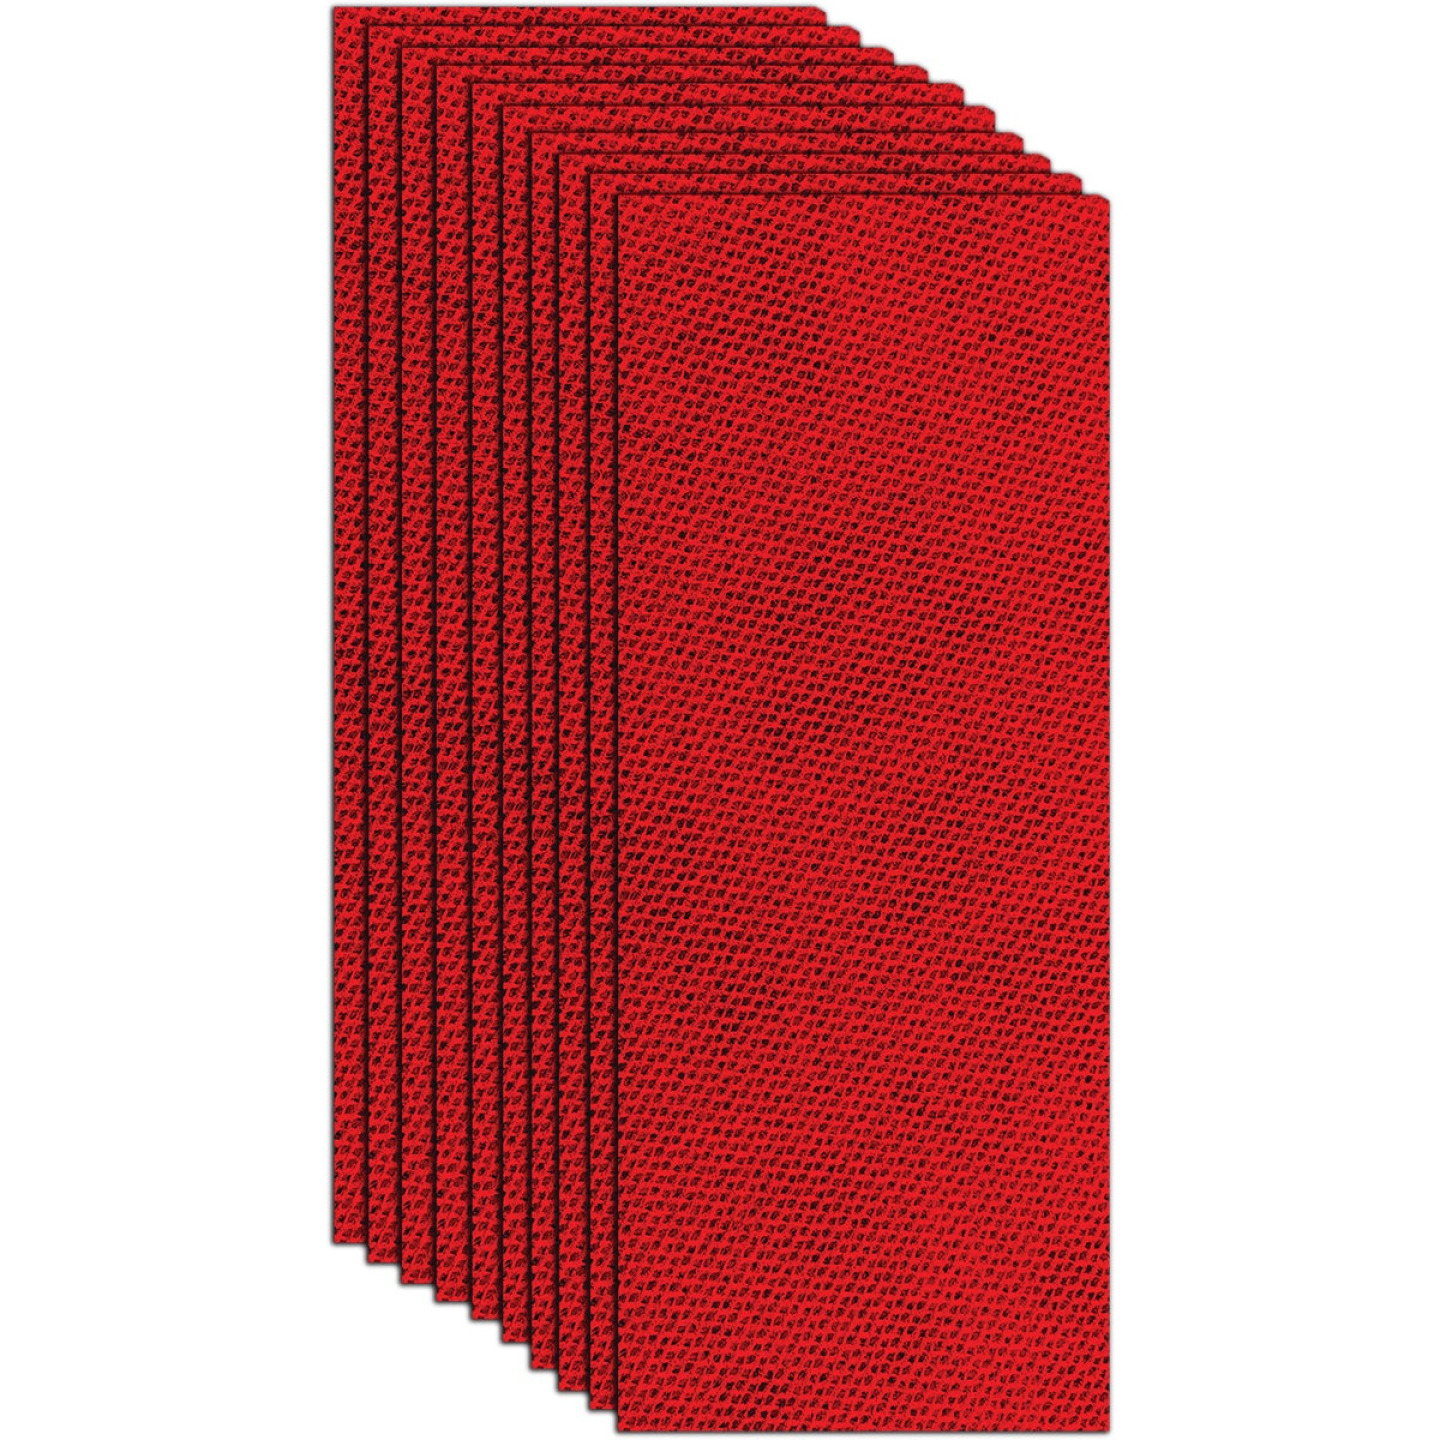 Diablo SandNet 2-3/4 In. x 5 In. Assorted Grits Reusable Hand Sander Refill Sheets (10-Pack) Image 1